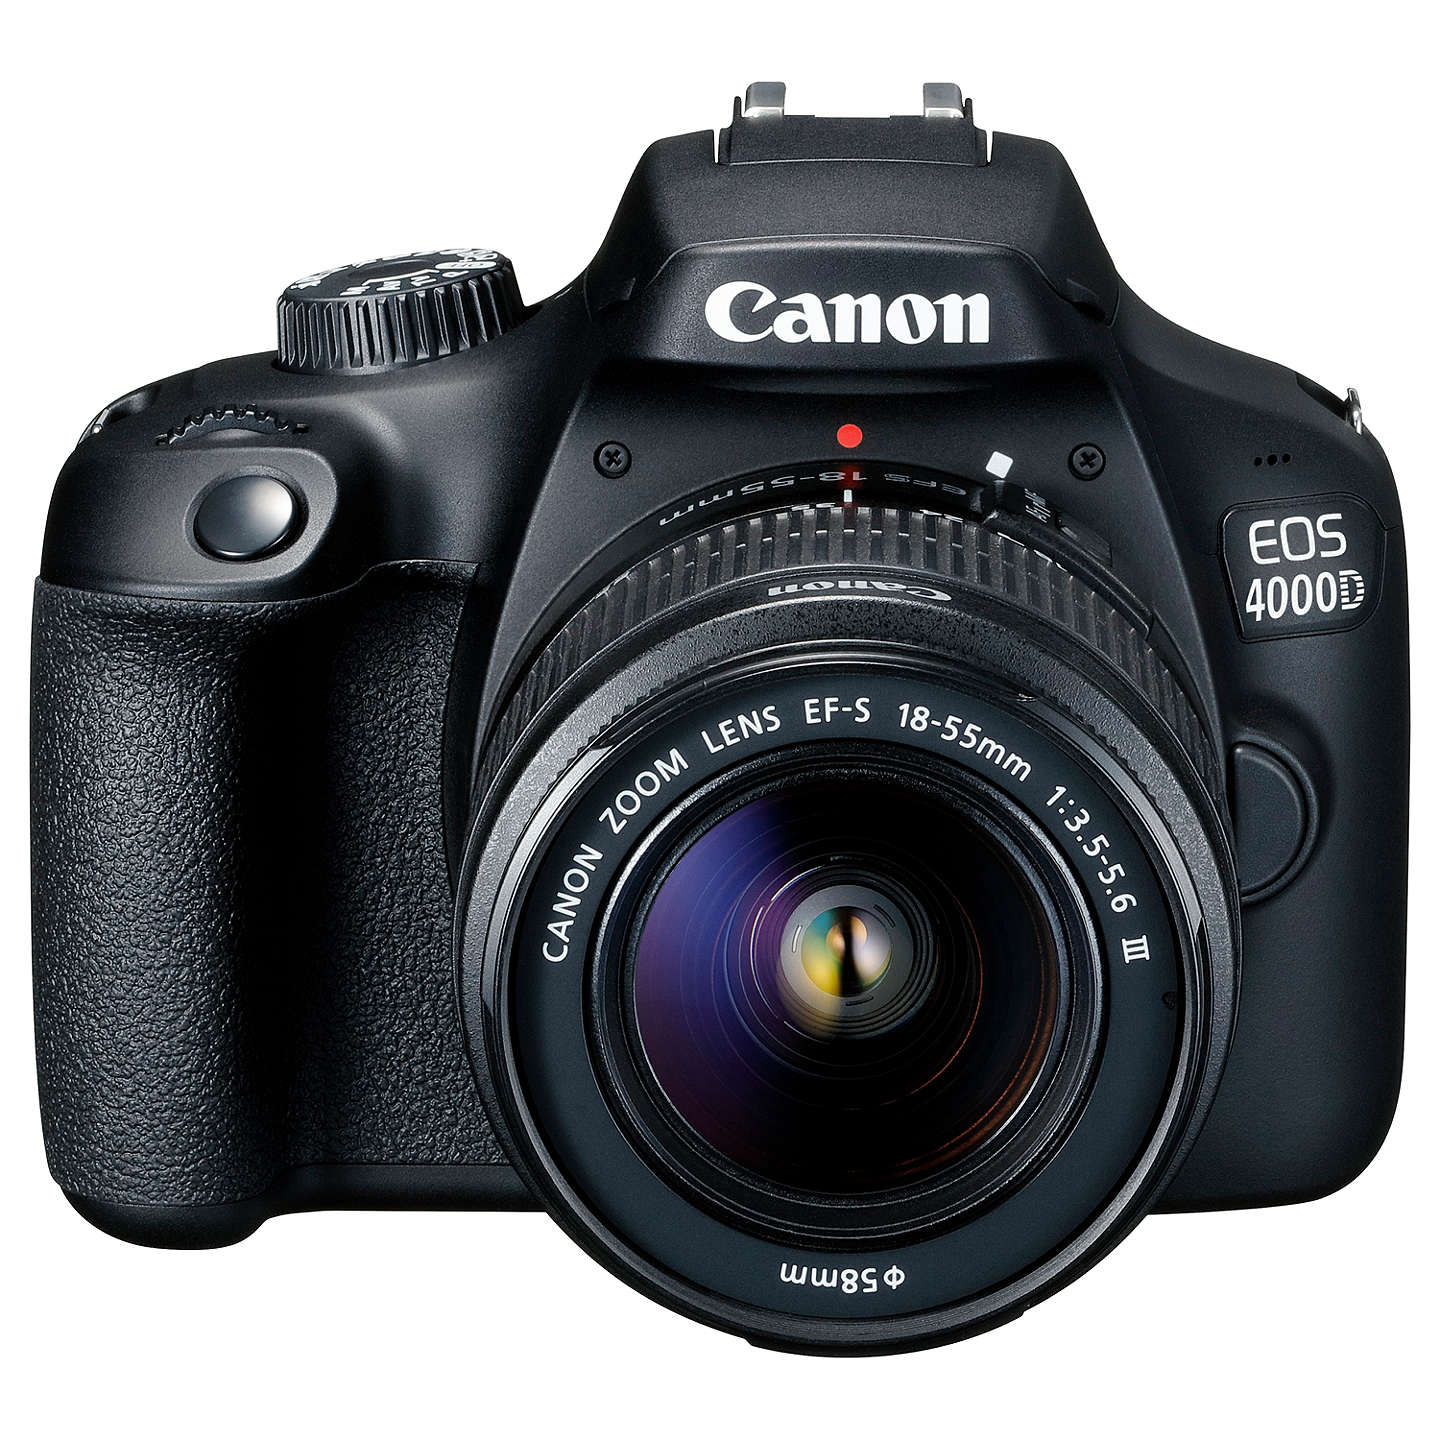 """Canon Eos 4000 D Digital Slr Camera With 18 55mm F/3.5 5.6 Lens, 1080p Full Hd, 18 Mp, Wi Fi, Optical Viewfinder, 2.7"""" Lcd Screen, Black by Canon"""